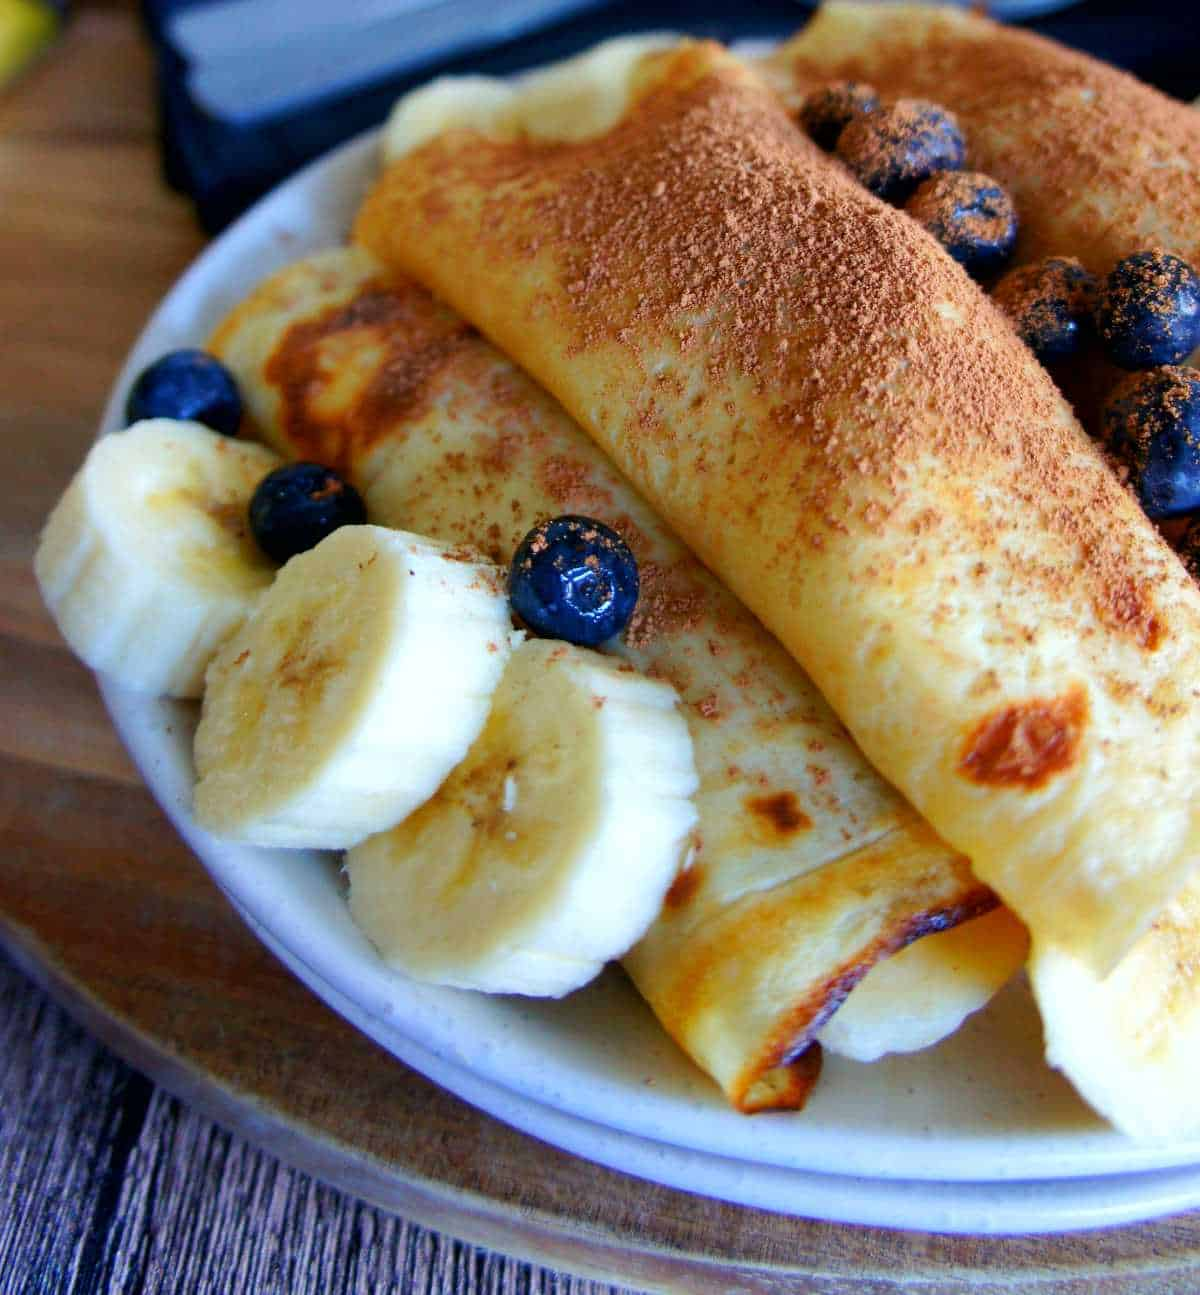 Blueberry crepes with banana and custard on a white plate